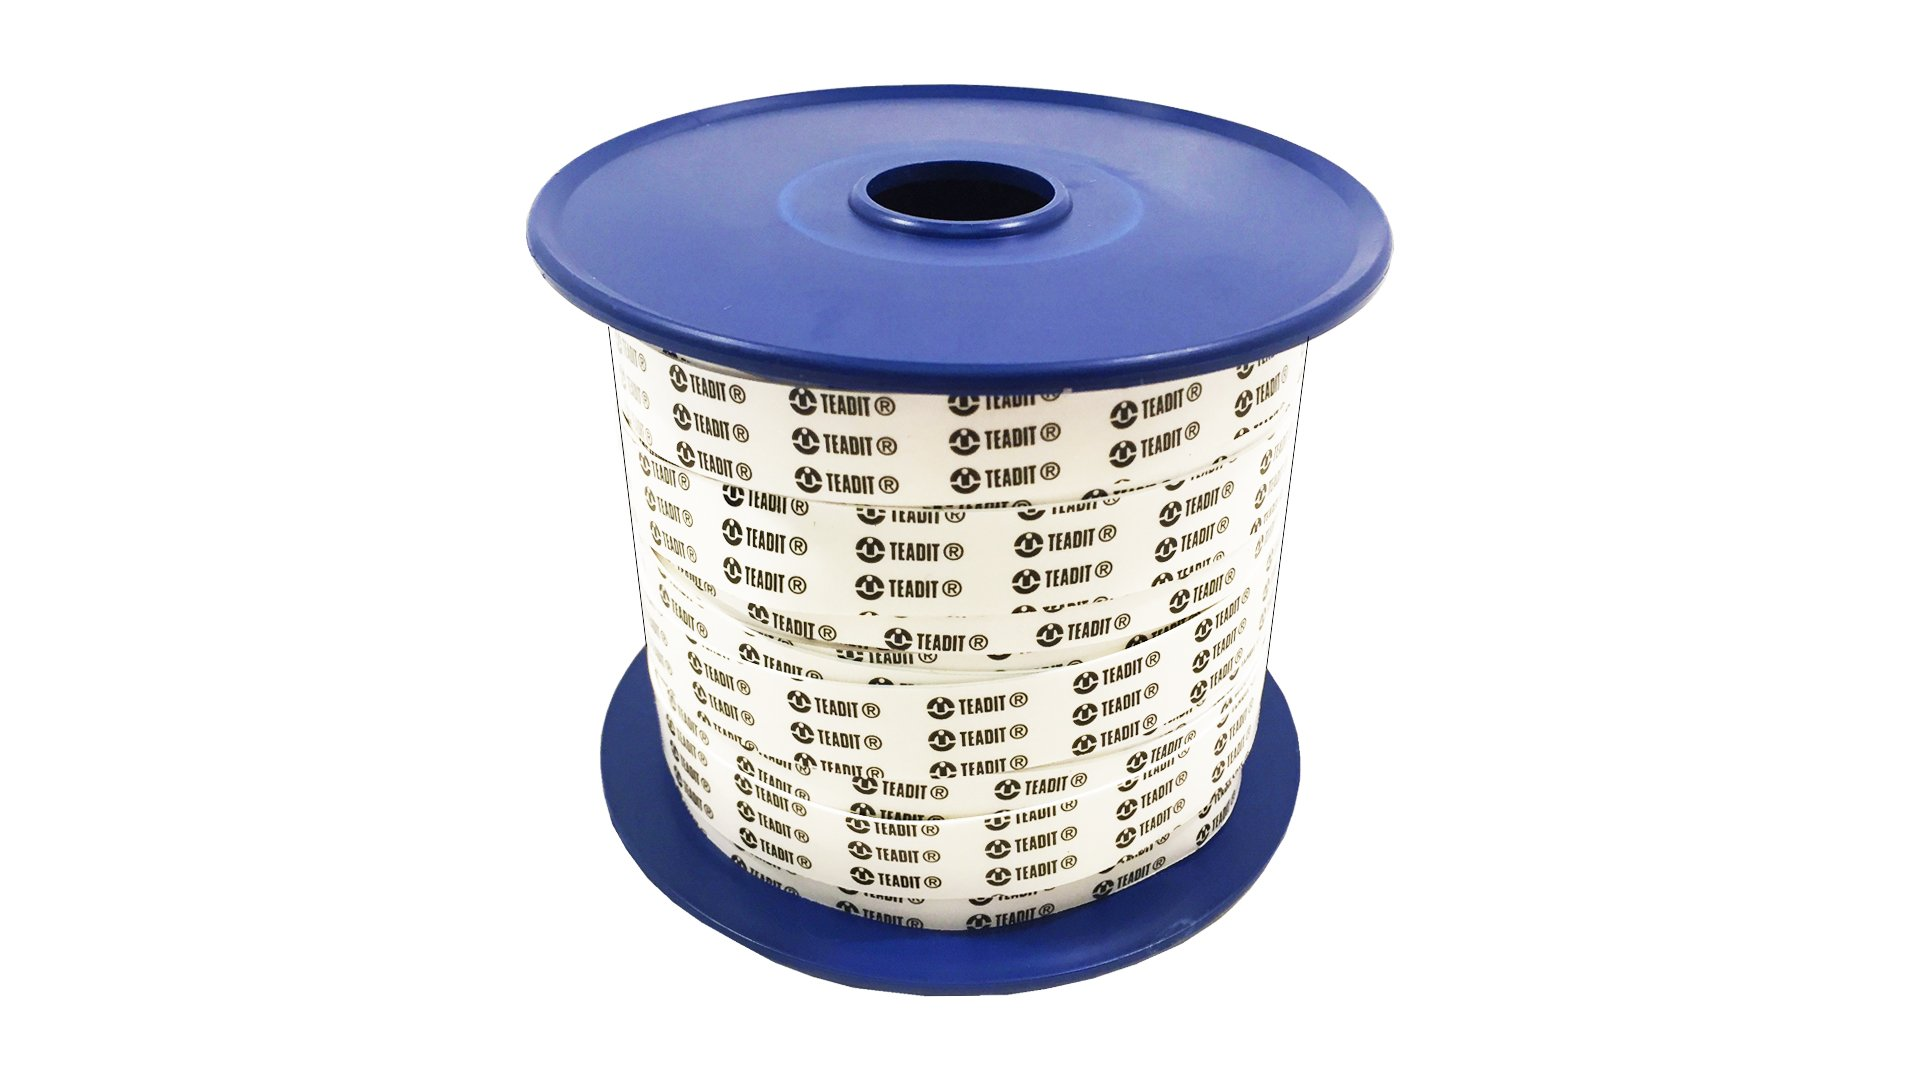 Sterling Seal and Supply (STCC) 24BB.500.020.100 White PTFE Teadit 24BBA Expanded Gasket Tape, 1/2'' Width, 0.020'' Thick, 100' Spool by Sterling Shelf Liners